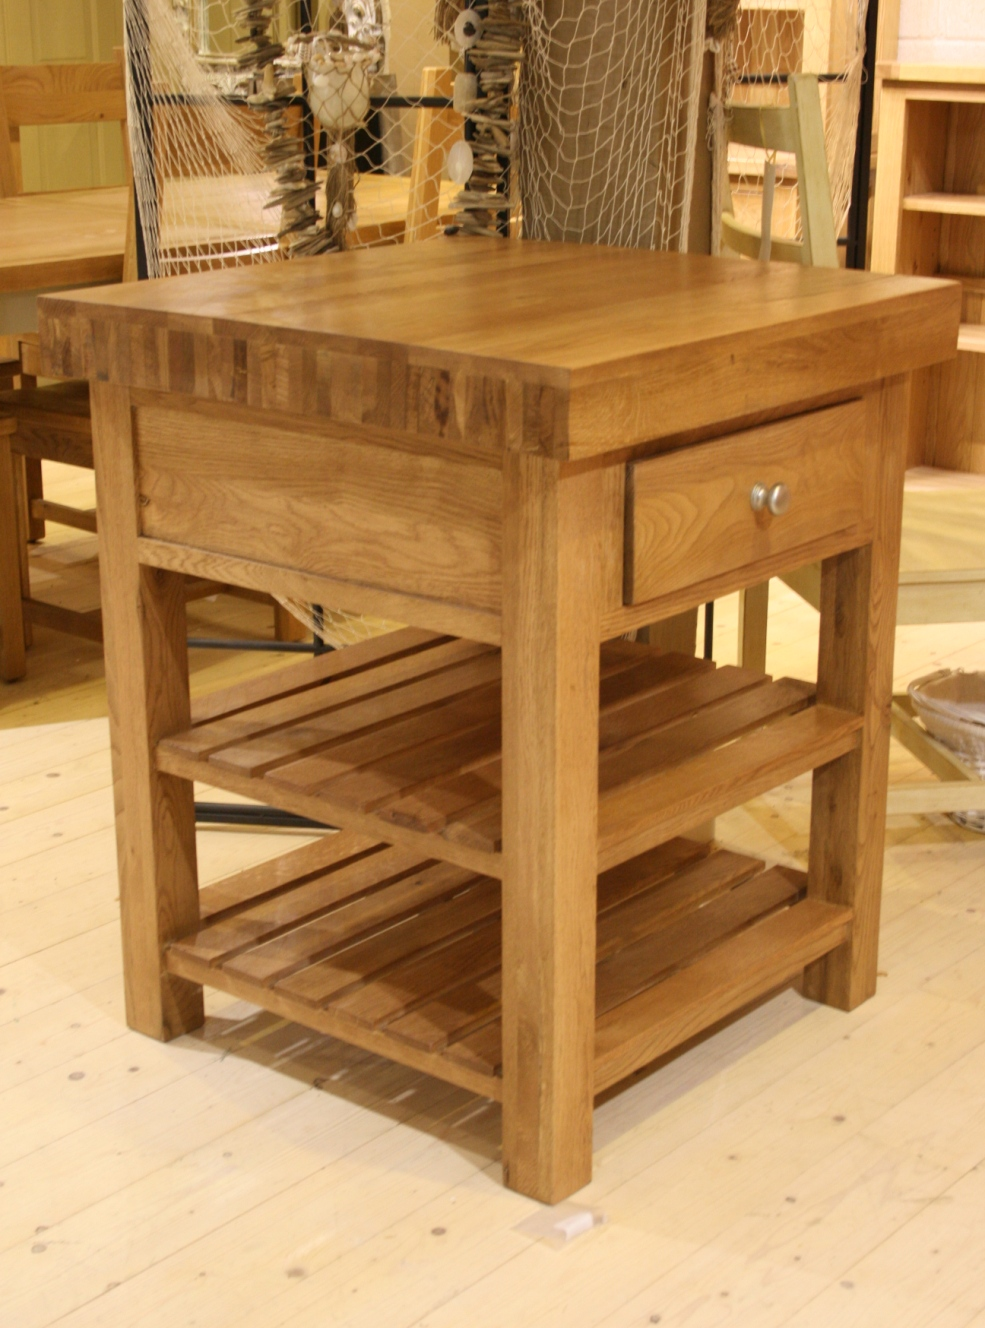 SQUARE ISLAND 1 DRAWER 2 SHELVES (Oak Top)    W76 x D76 x h92cm    €779 ( 40% Off Now €468 )  Product Code: 112095